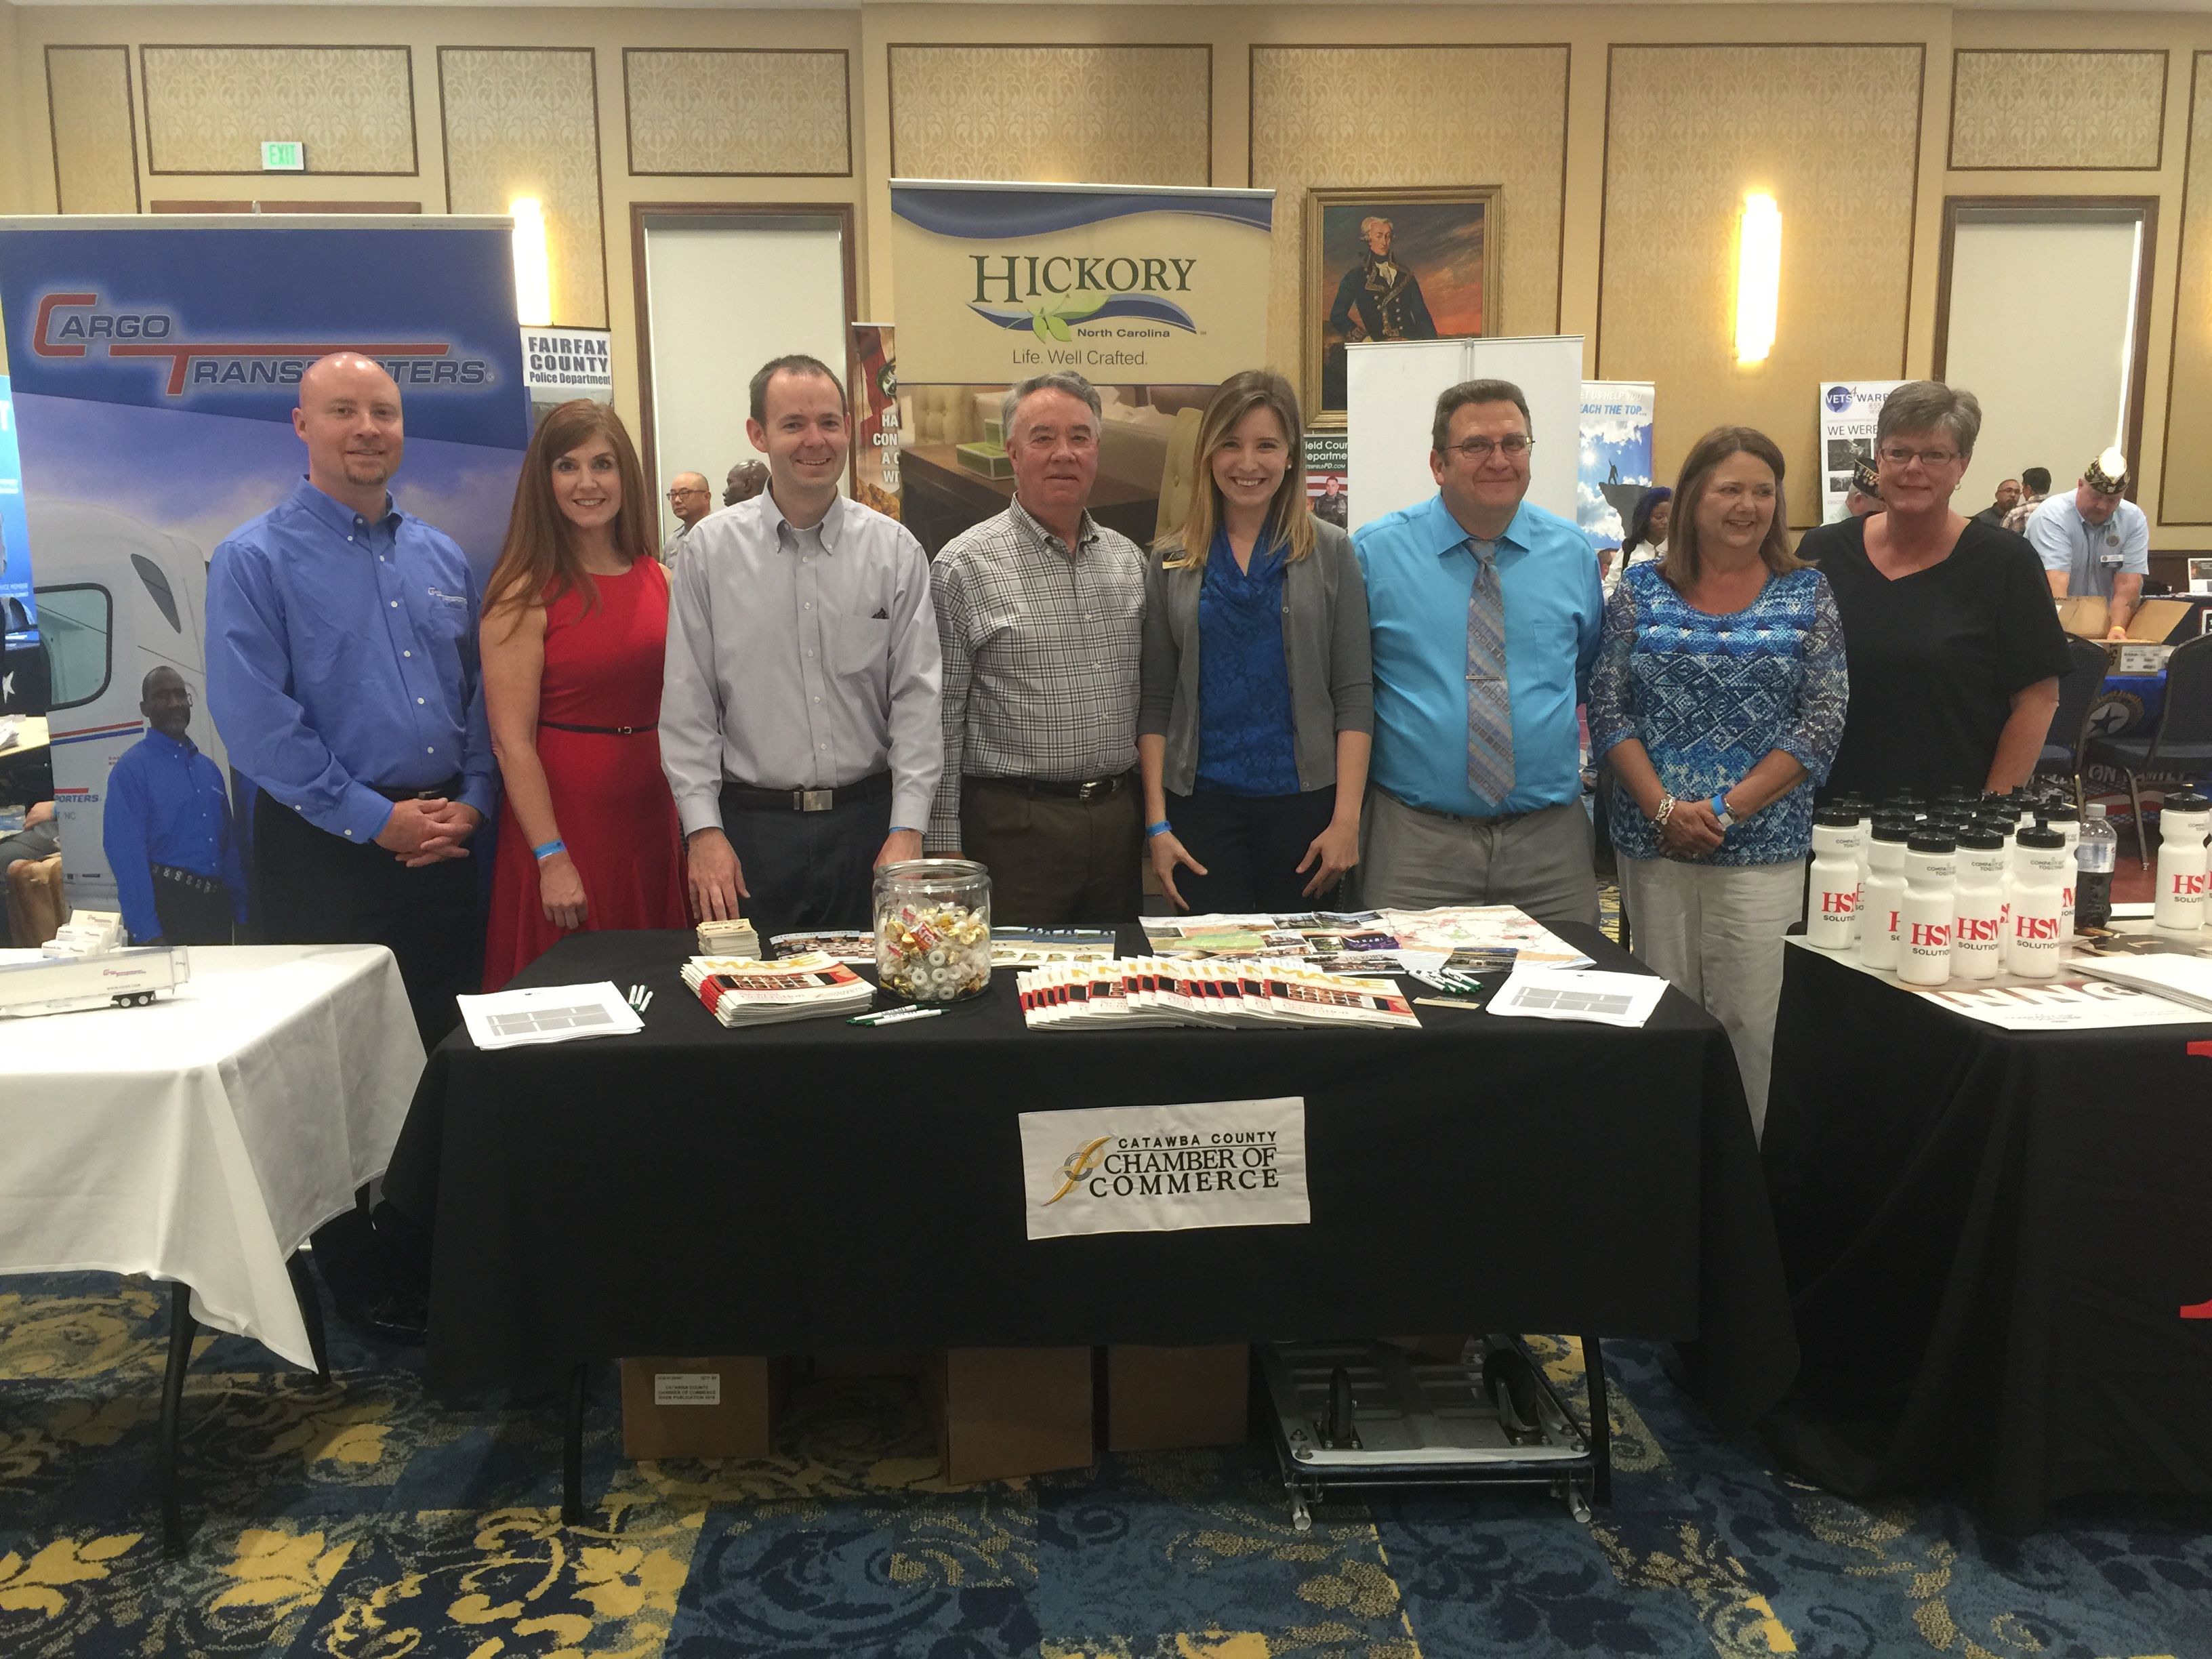 Catawba County attendees at the Hiring for Heroes Job Fair at Fort Bragg. Shown (from left) are Shawn Brown, Shelly Mundy, Nathan Huret, Danny Hearn, Lindsay Keisler, Russ Vickers, Paula Howe, Mary Kay Rayfield.